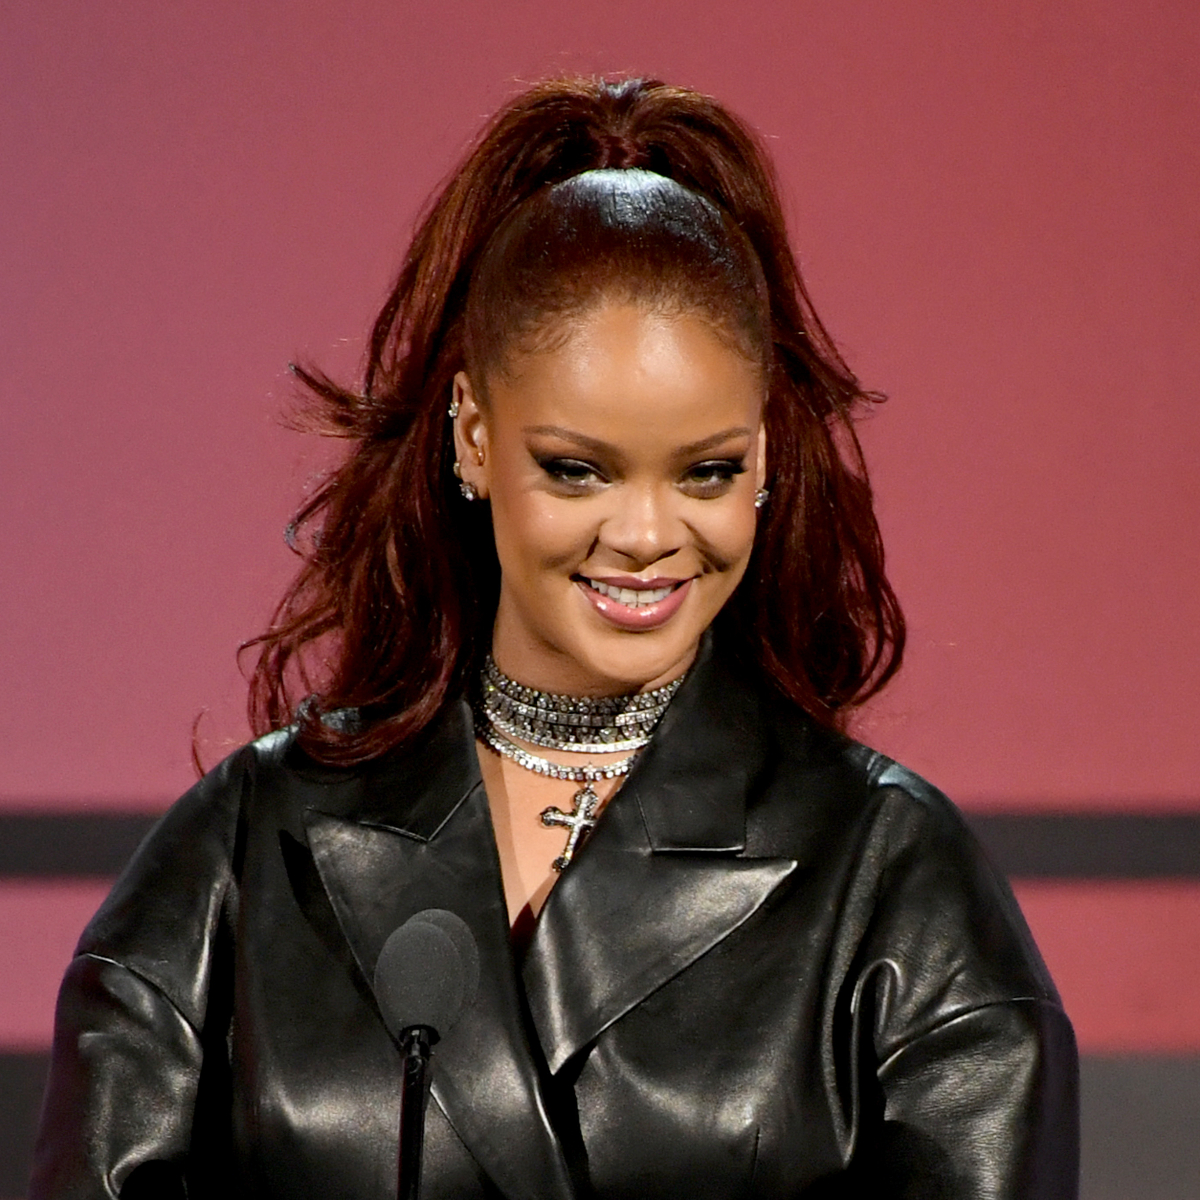 Rihanna on her new album: I have been trying to get back into the studio